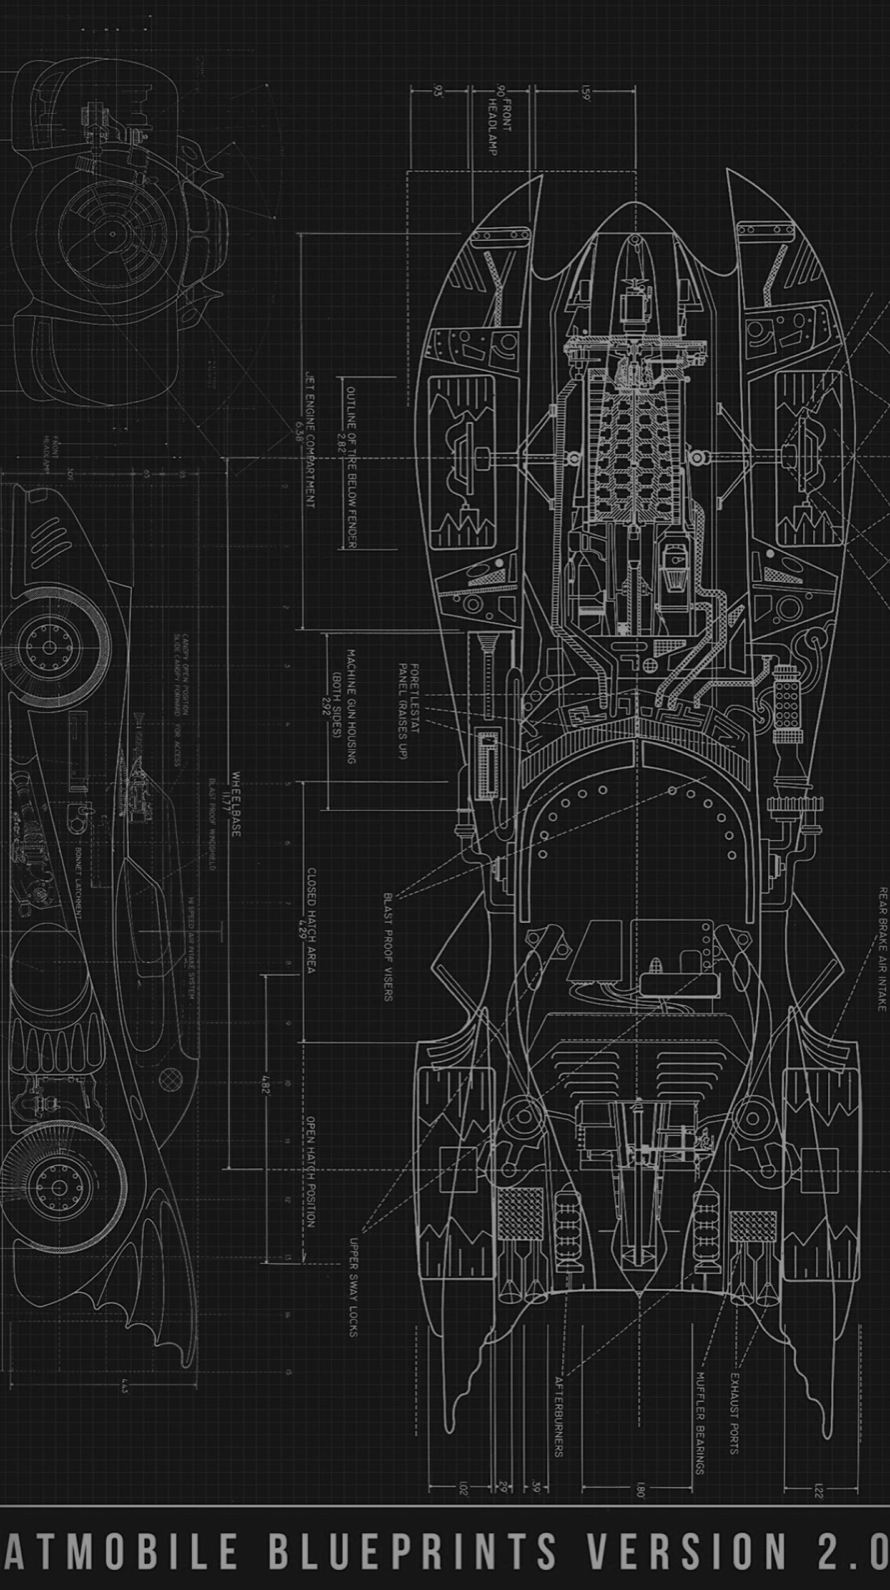 Cool blueprint black wallpaper iphone6s iphone 6s iphone 6 wallpaper malvernweather Gallery